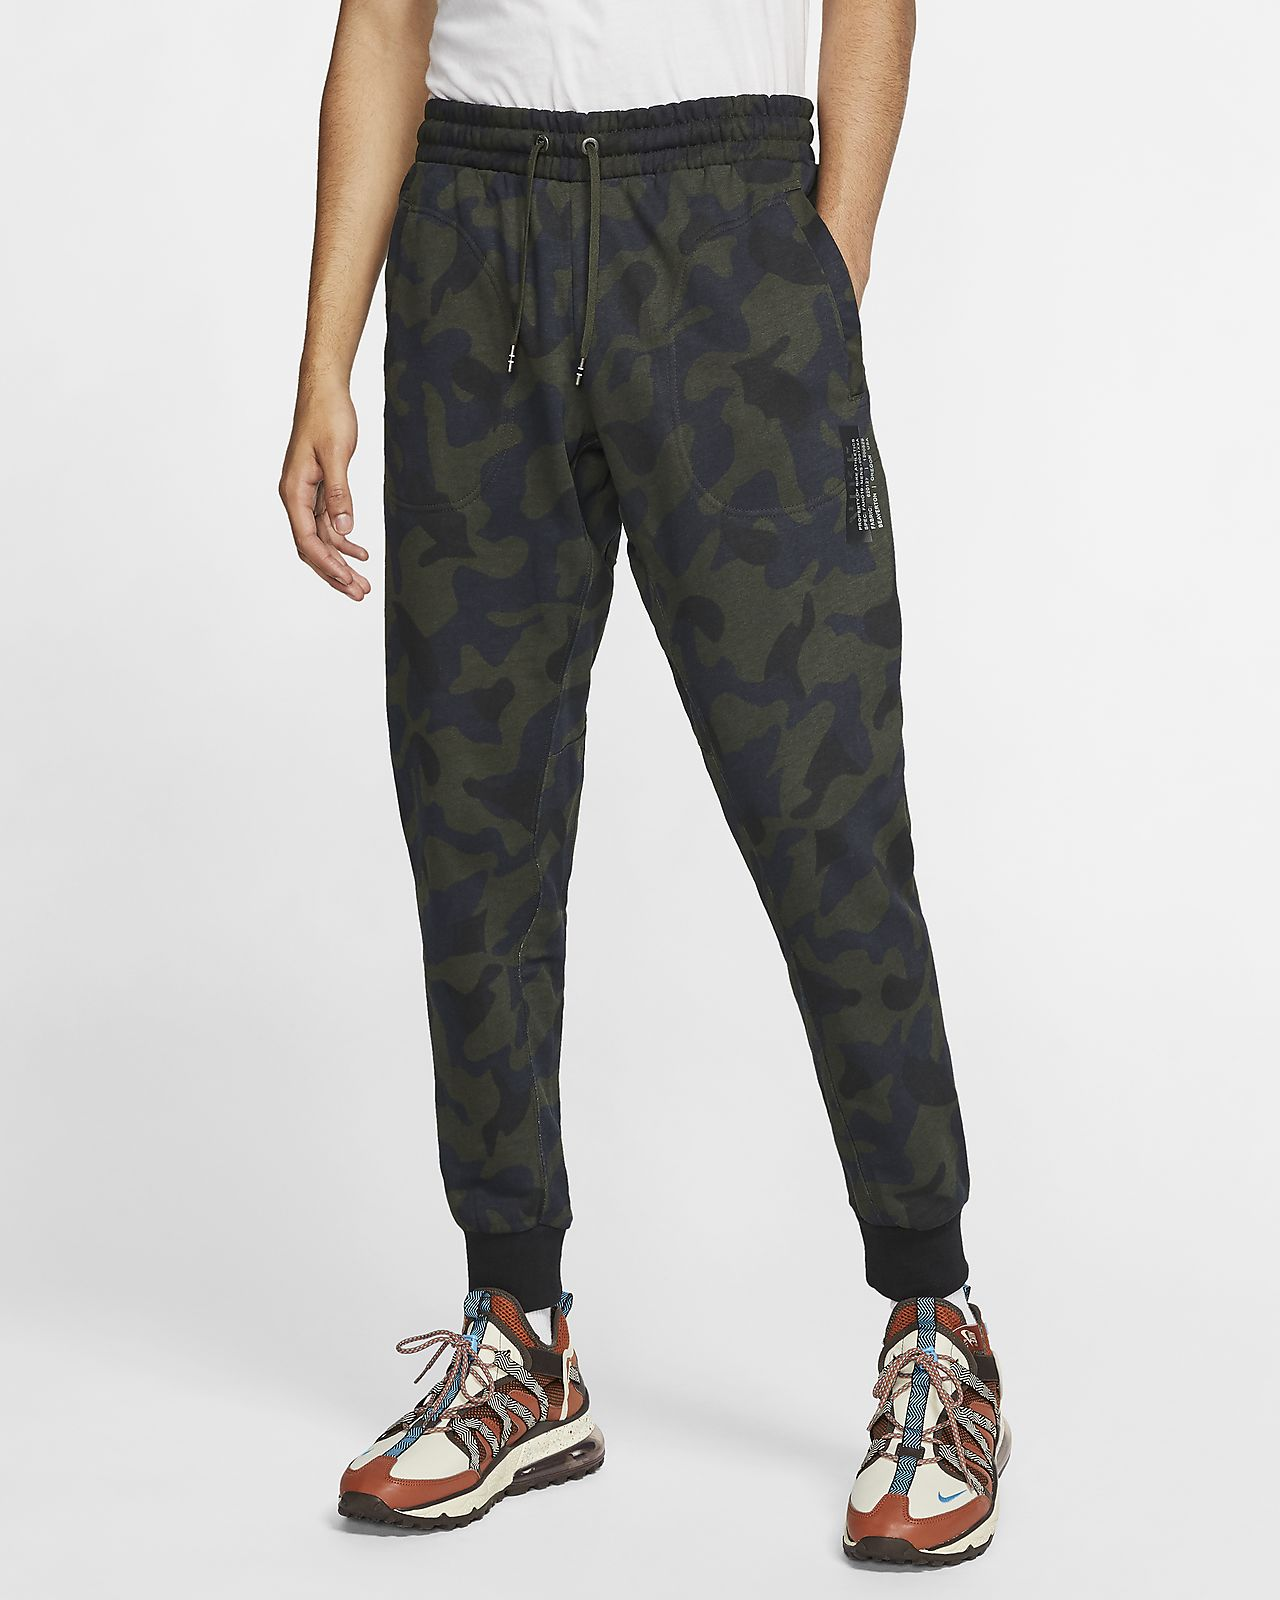 Nike Sportswear Men's French Terry Printed Trousers